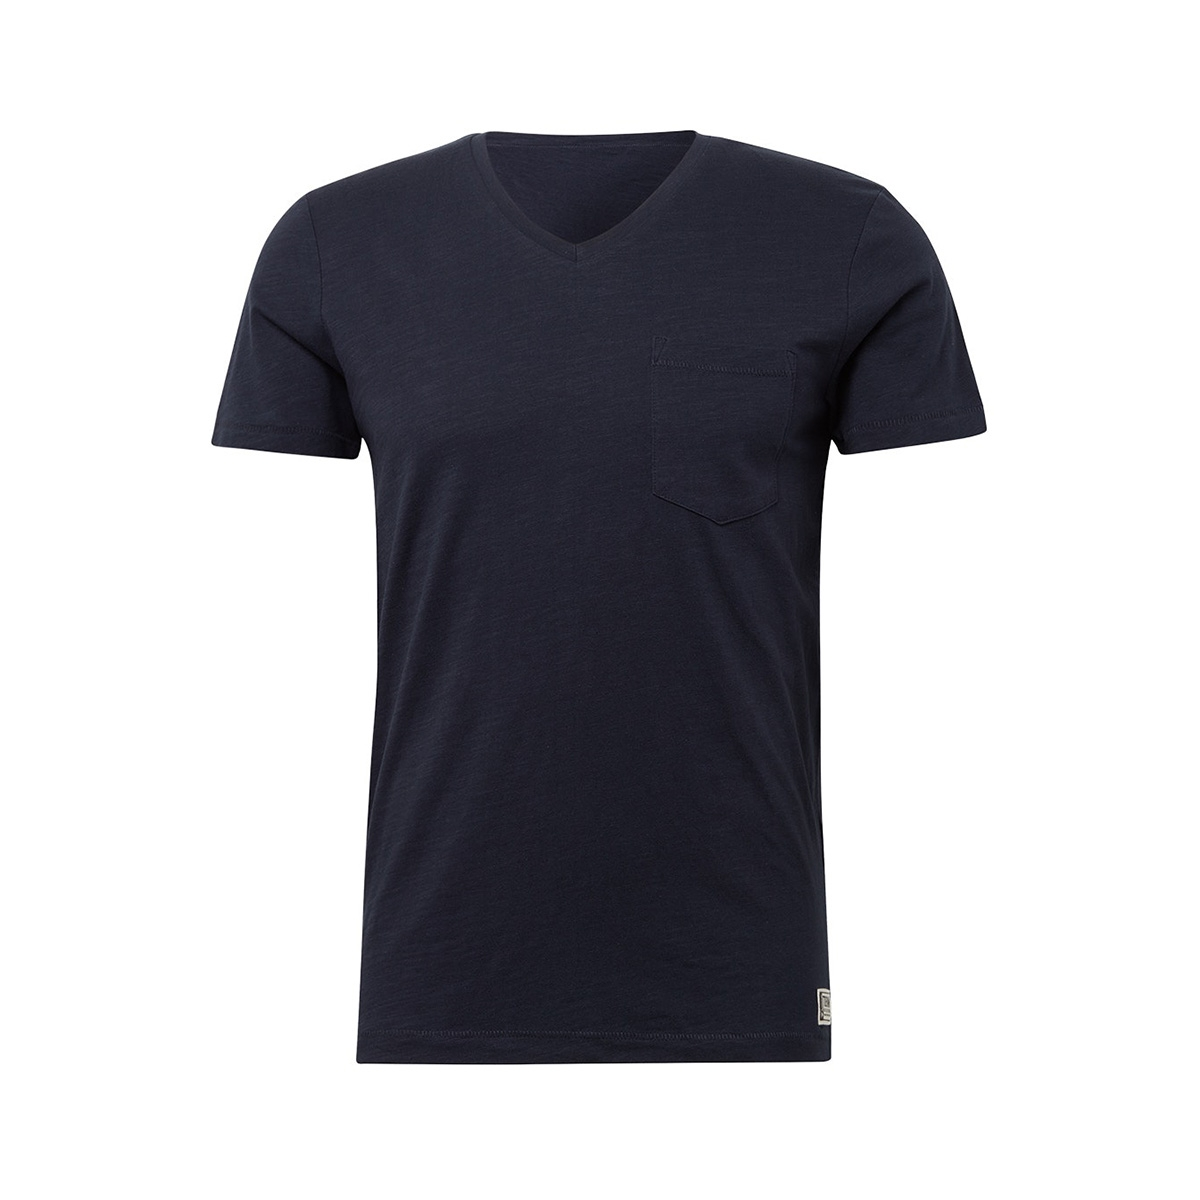 1008175xx12 tom tailor t-shirt 10668